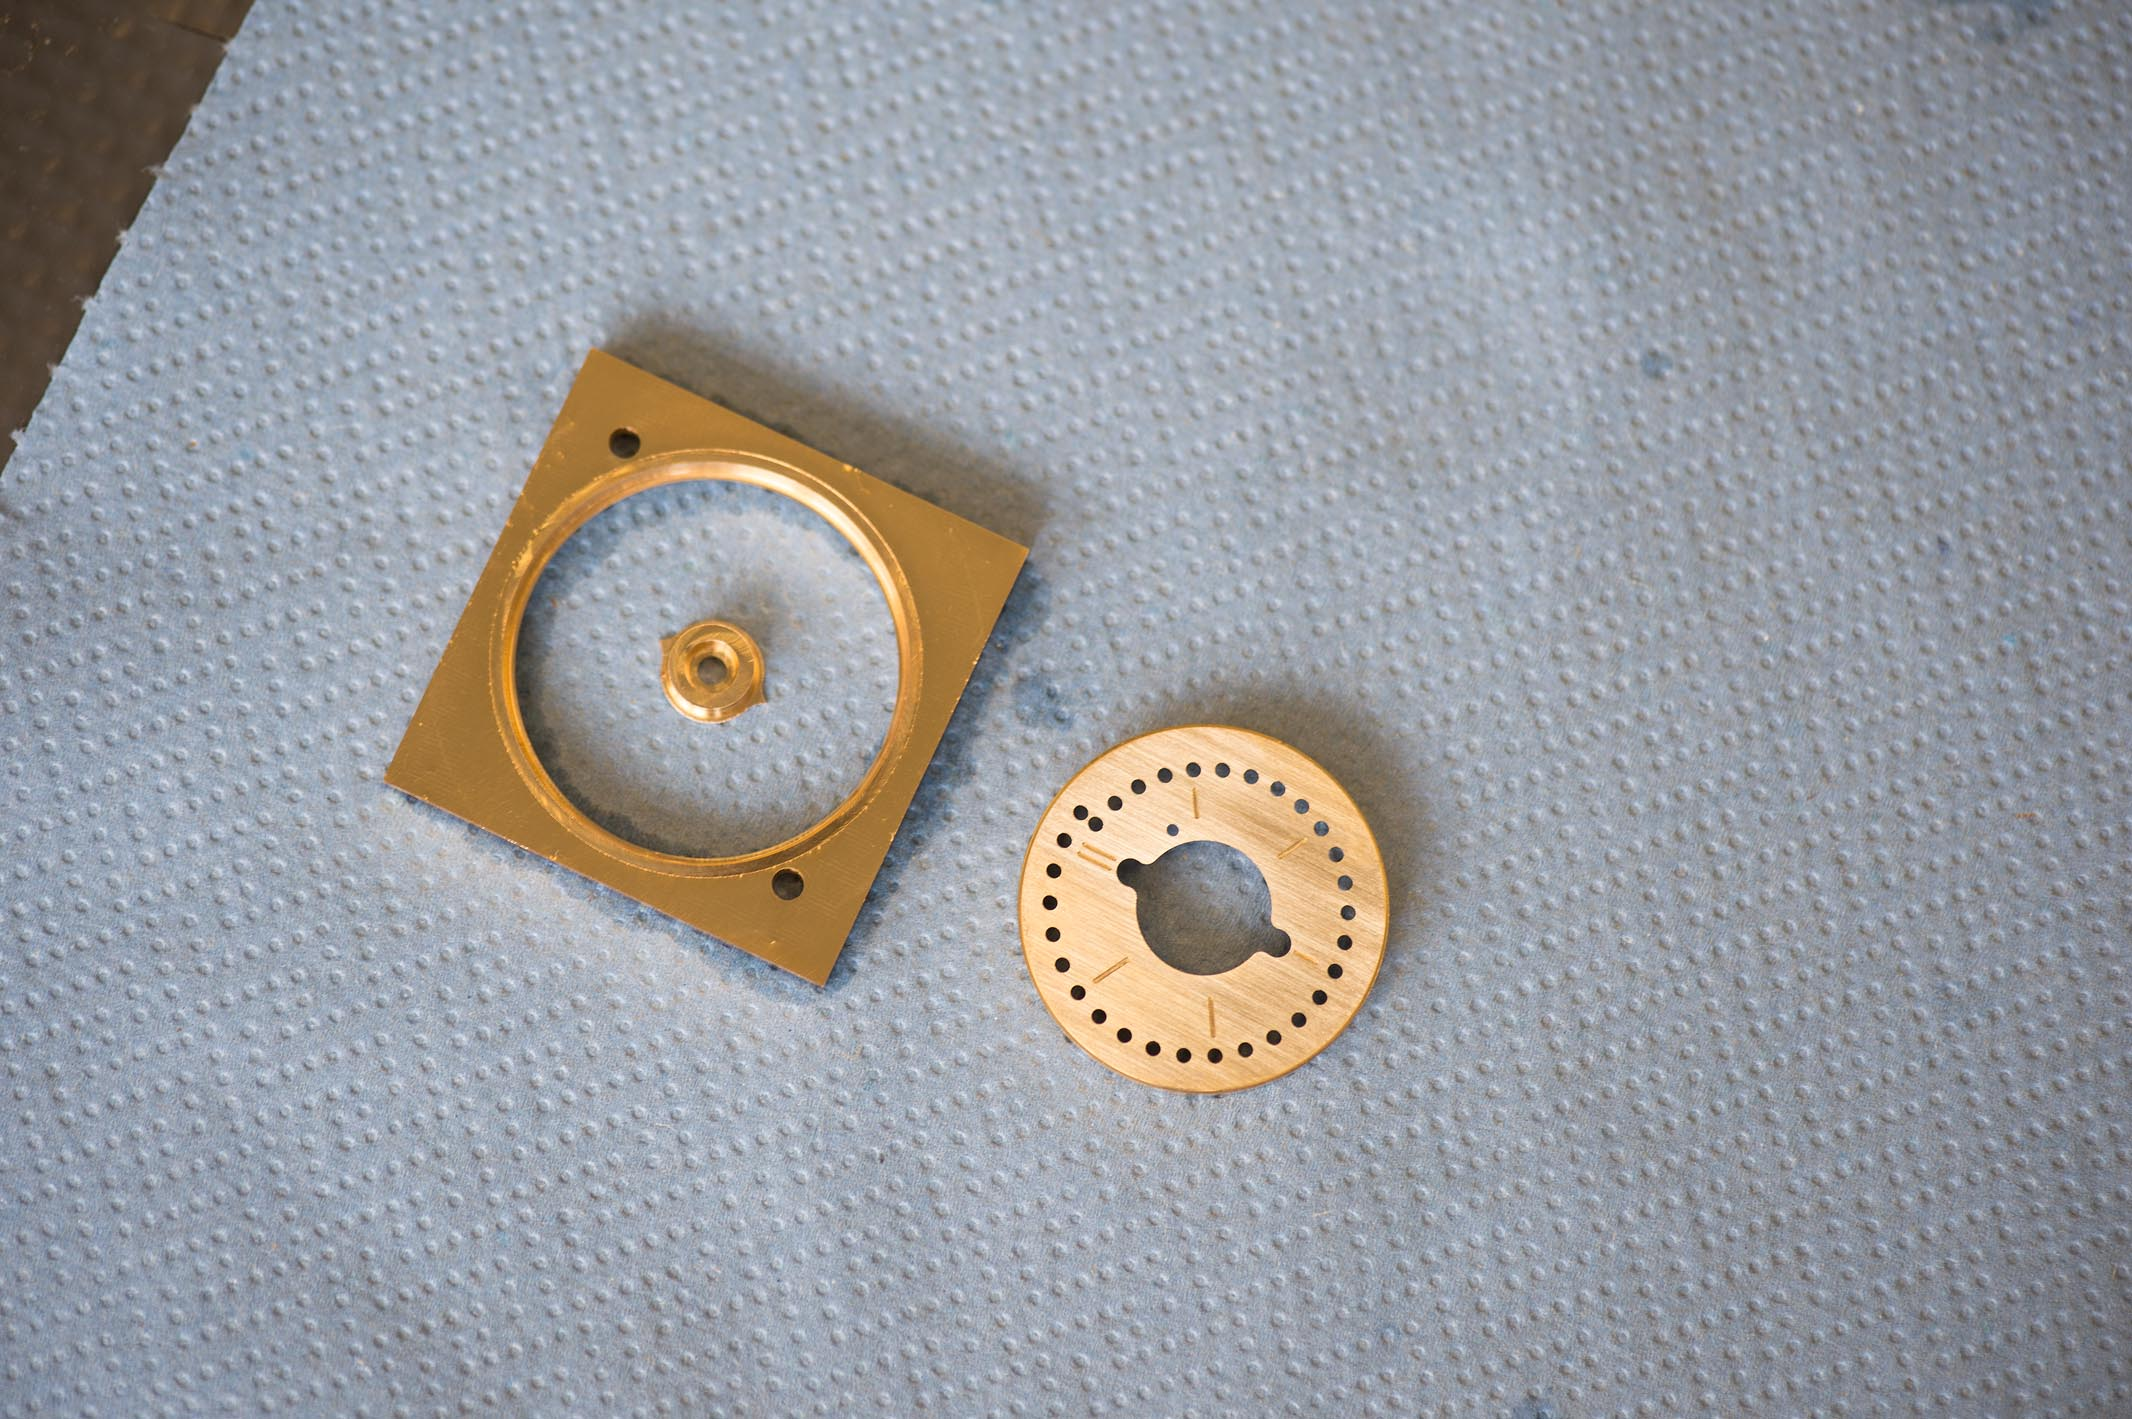 The finished dial and the spare material which will be recycled.